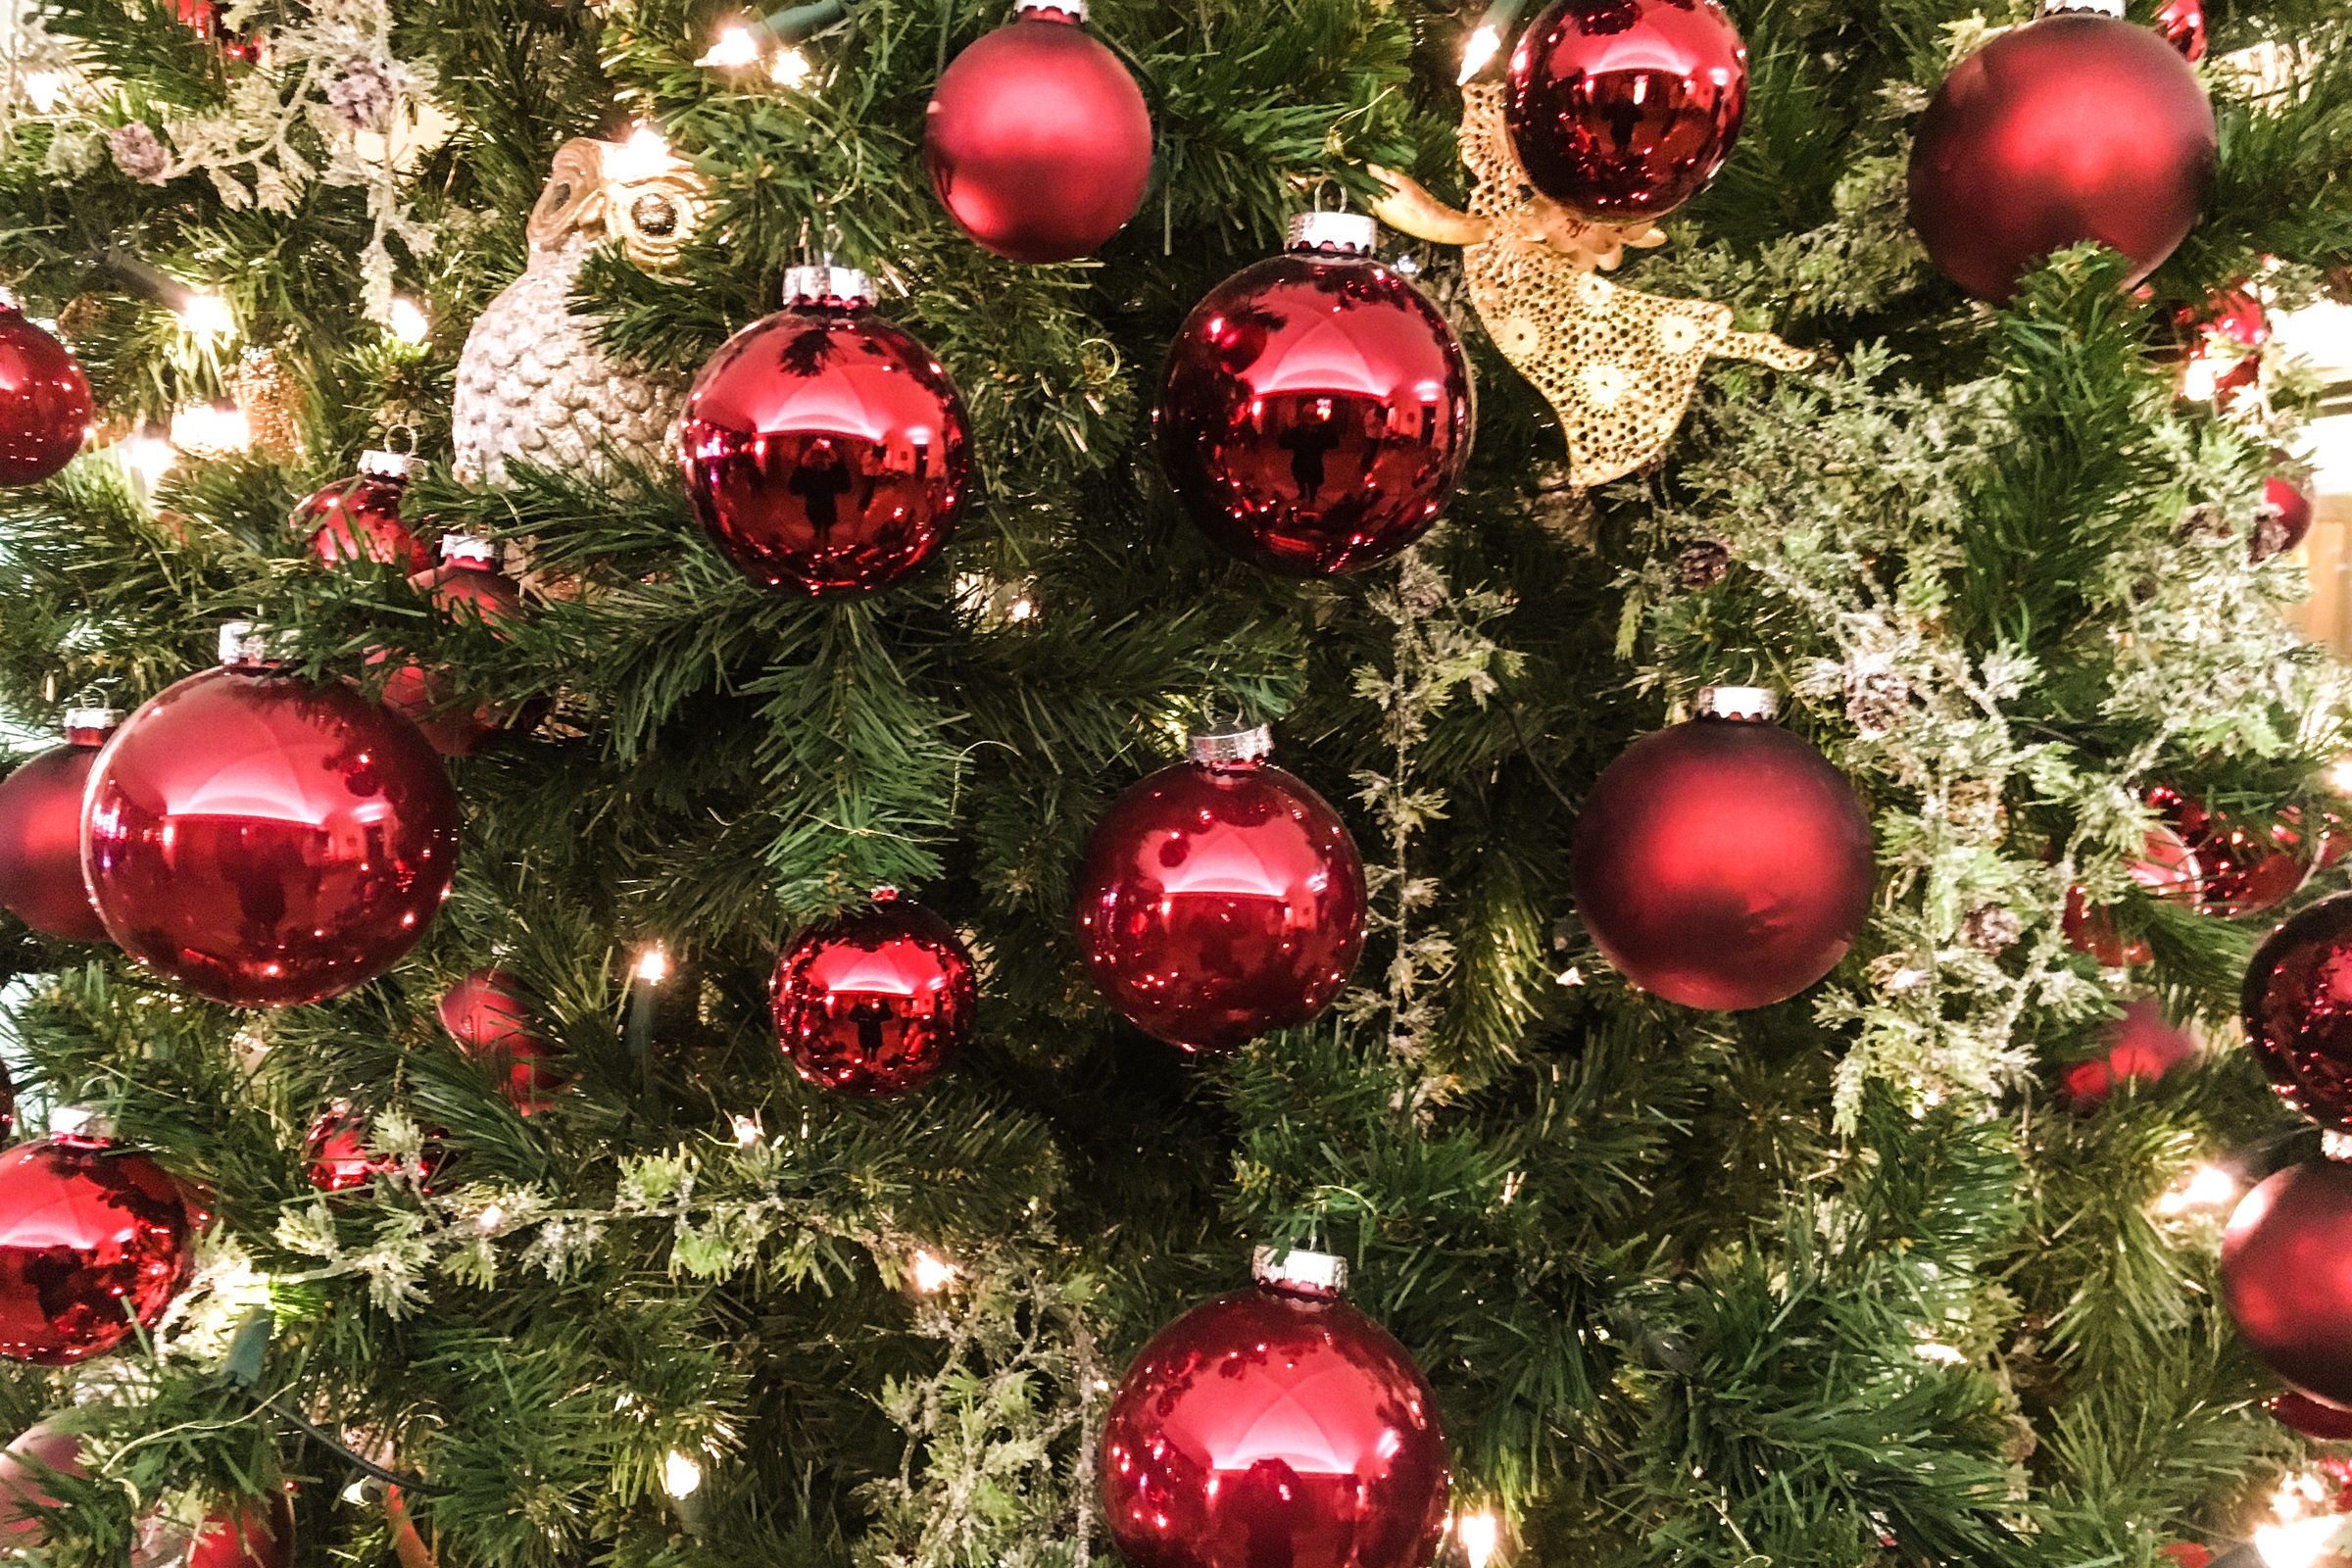 Free Stock Photo of Closeup of Red Ball Ornaments on Christmas Tree